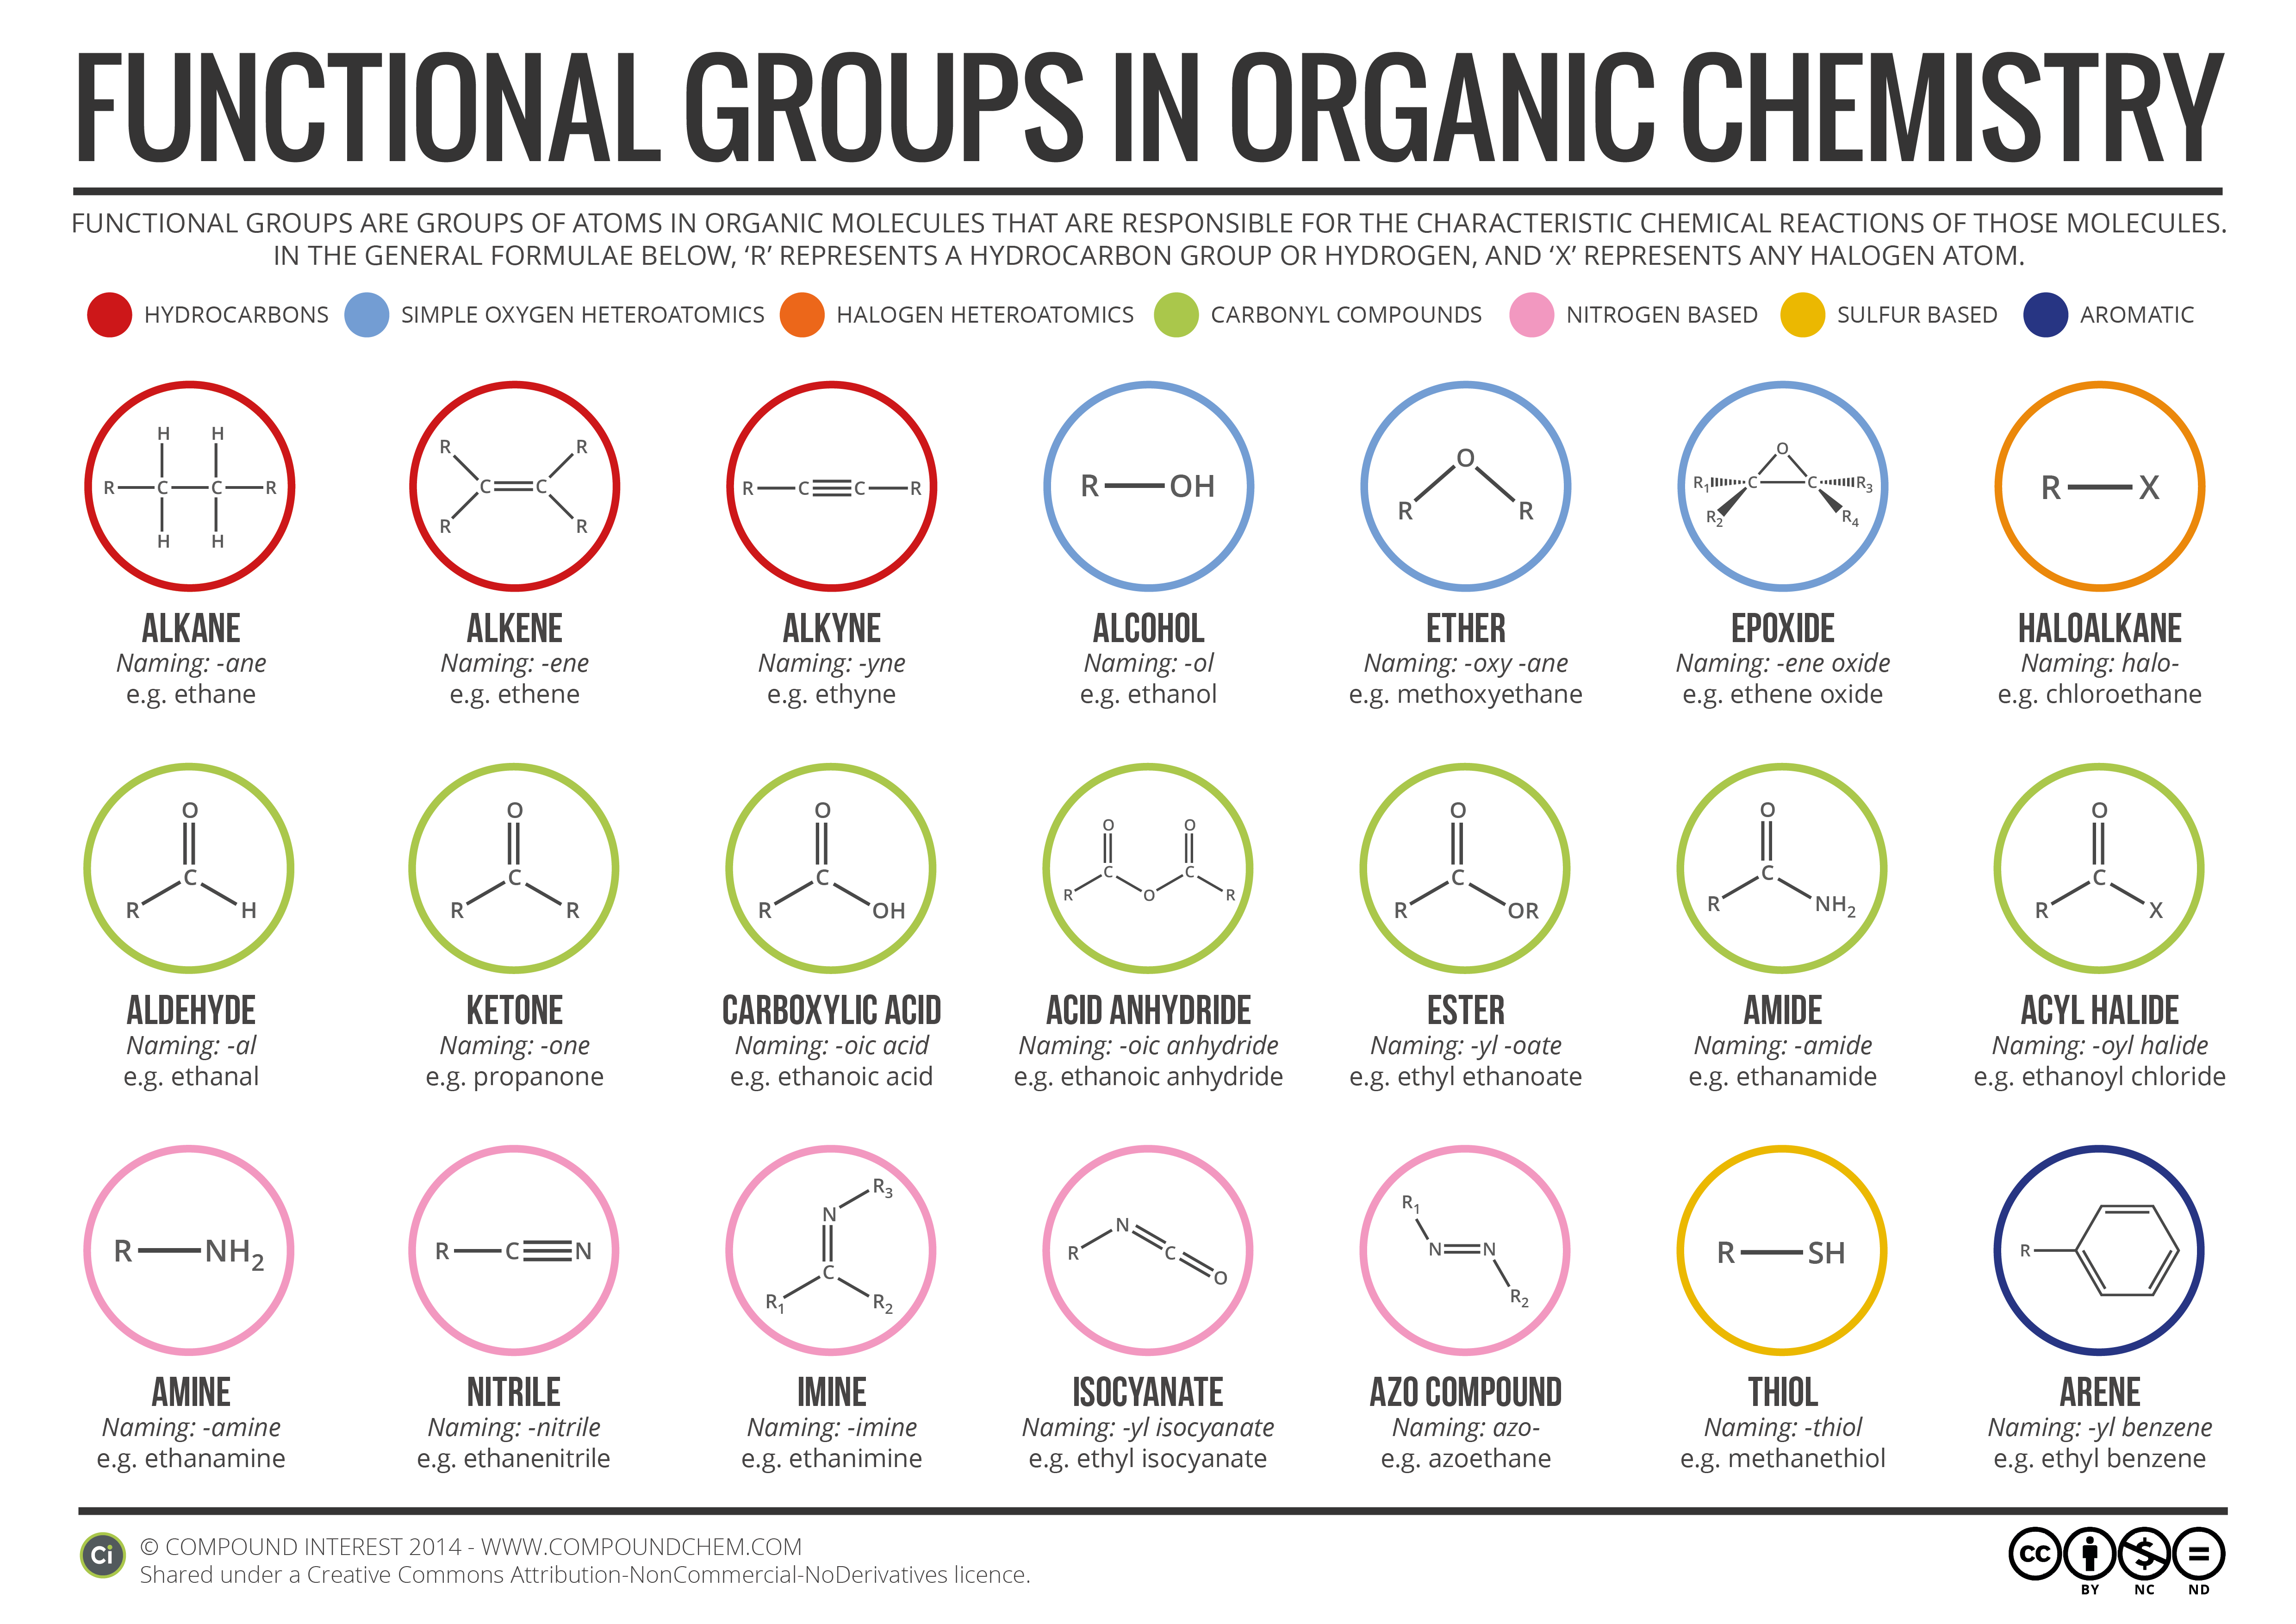 Functional Groups in Organic Chemistry [Infographic]